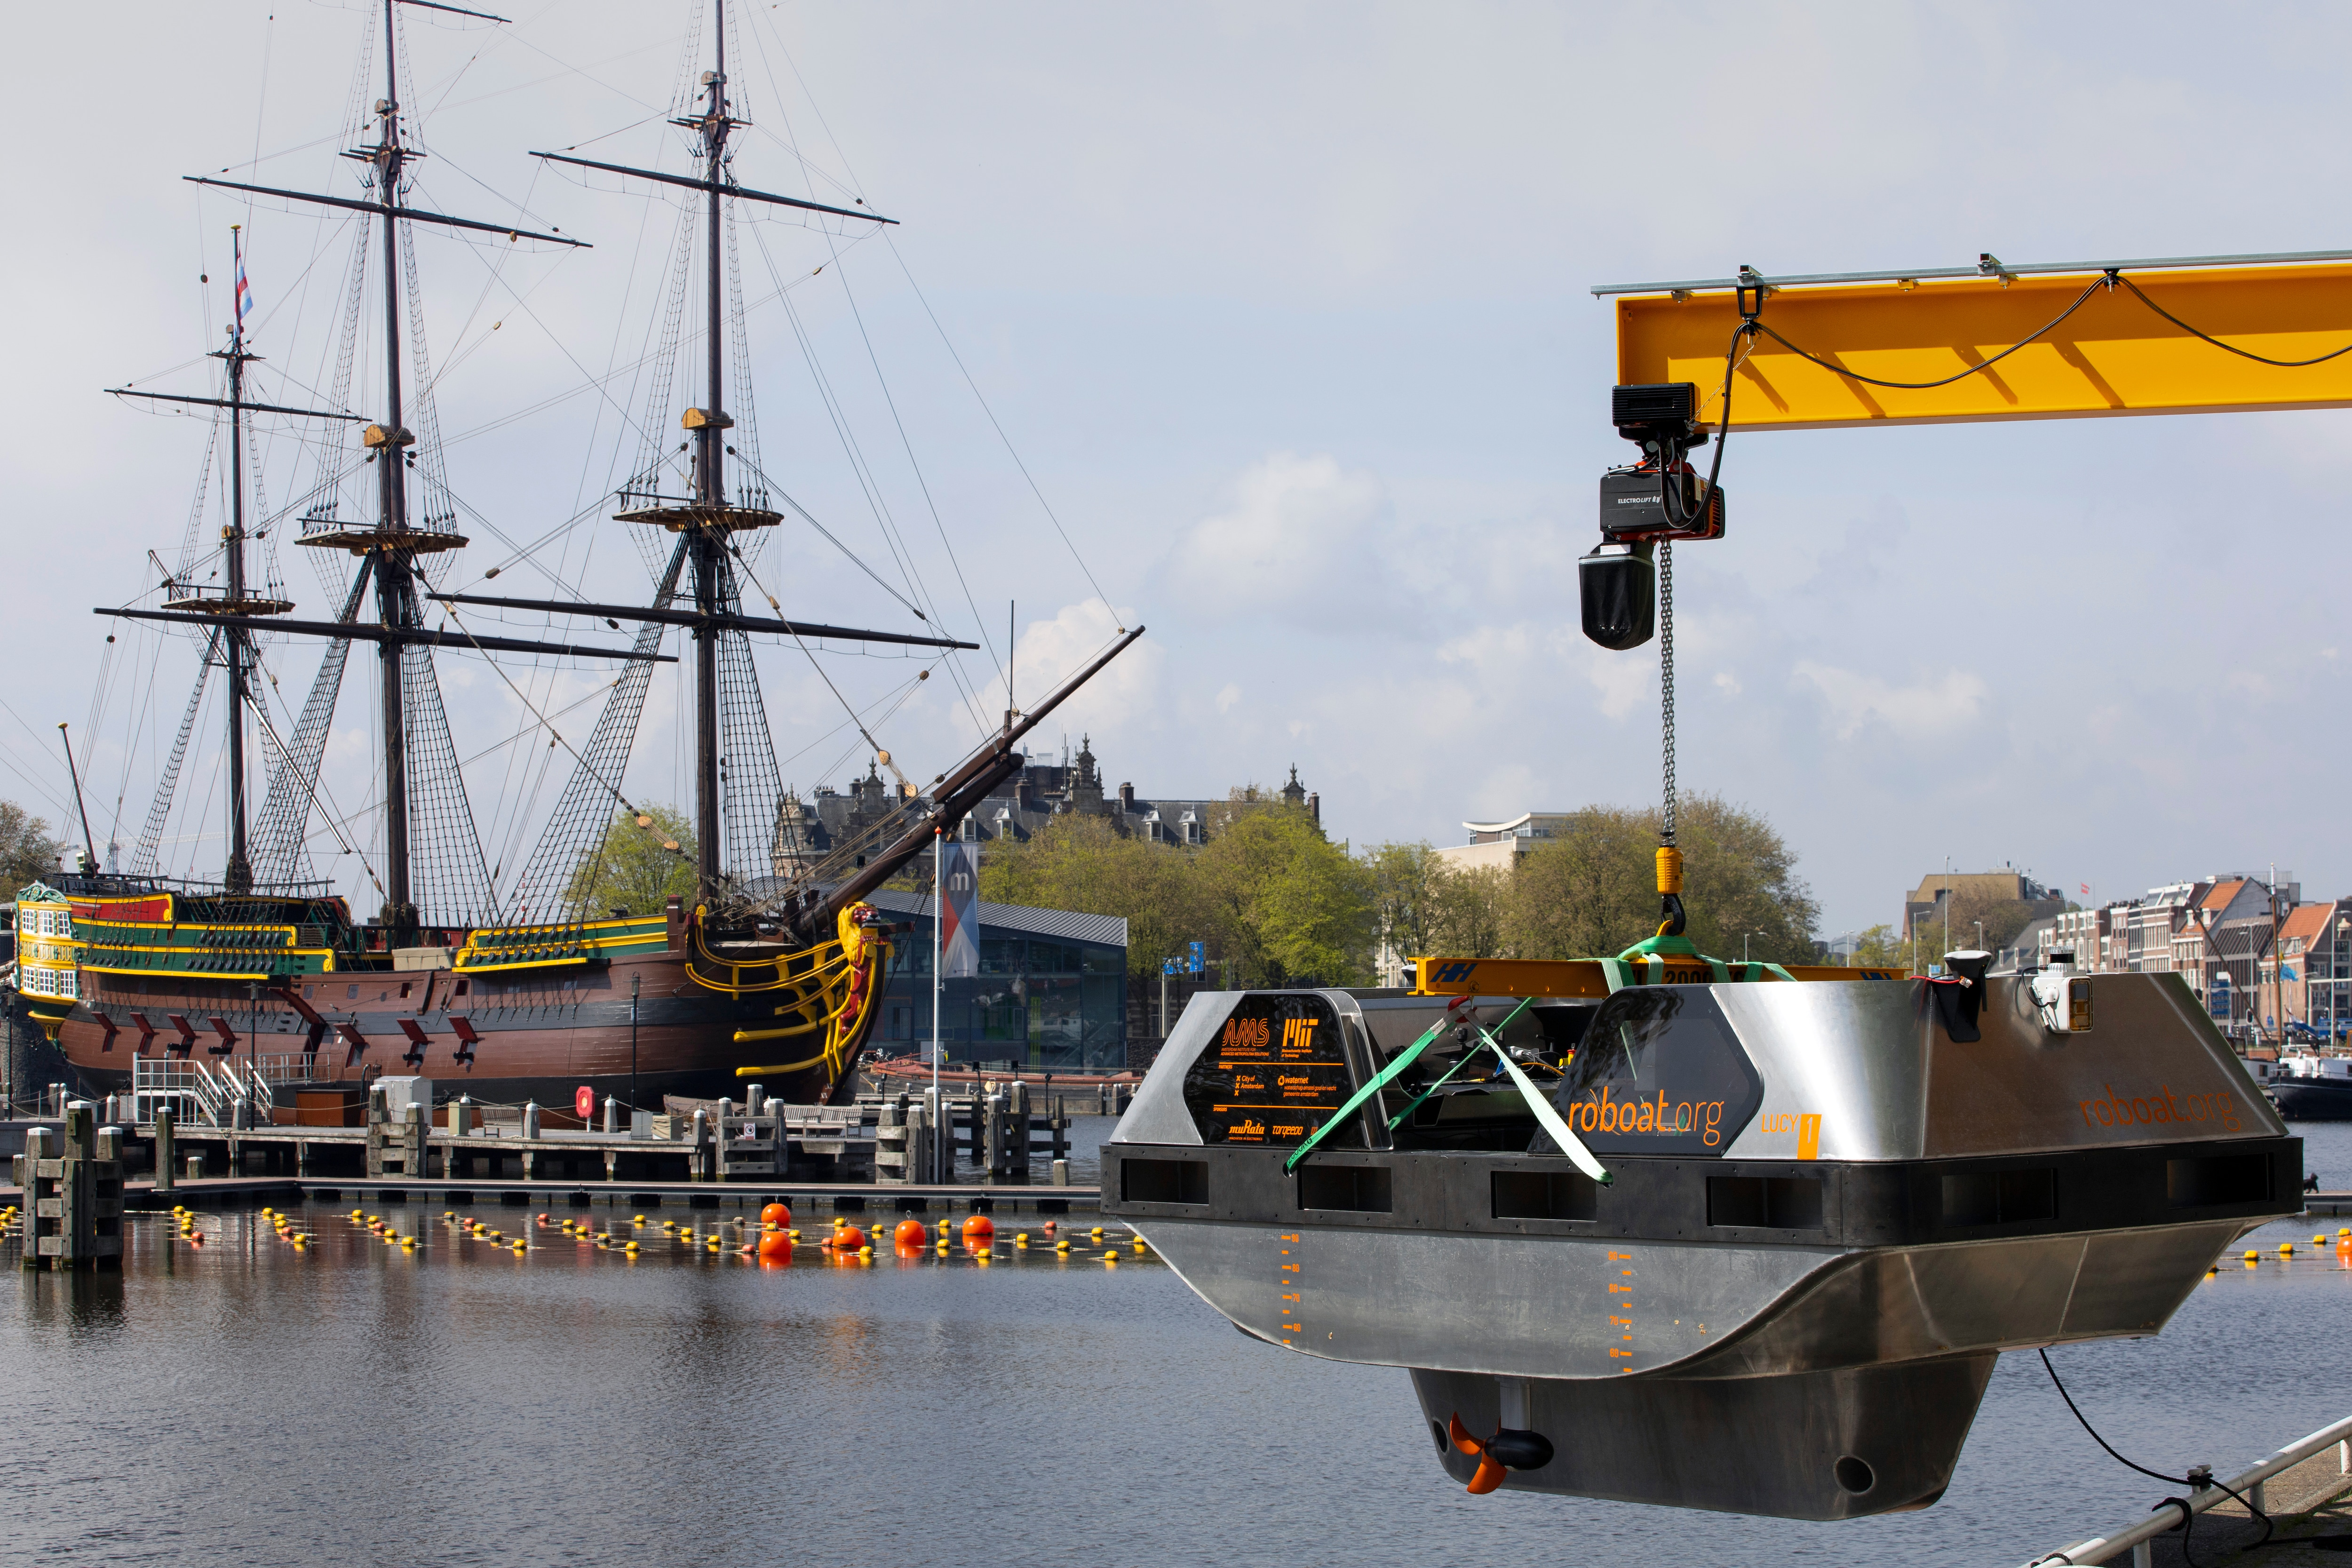 An electric boat is lowered outside a workshop with a full-size replica of the 18th century three-mast trading ship Amsterdam at the National Maritime Museum in the background, in Amsterdam, Thursday, May 20, 2021. Already steeped in maritime history, the city's more than 100 kilometers (60 miles) of waterways are to start hosting prototypes of futuristic boats — small, fully-autonomous electric vessels — to carry out tasks including transporting passengers and picking up garbage. (AP Photo/Peter Dejong)